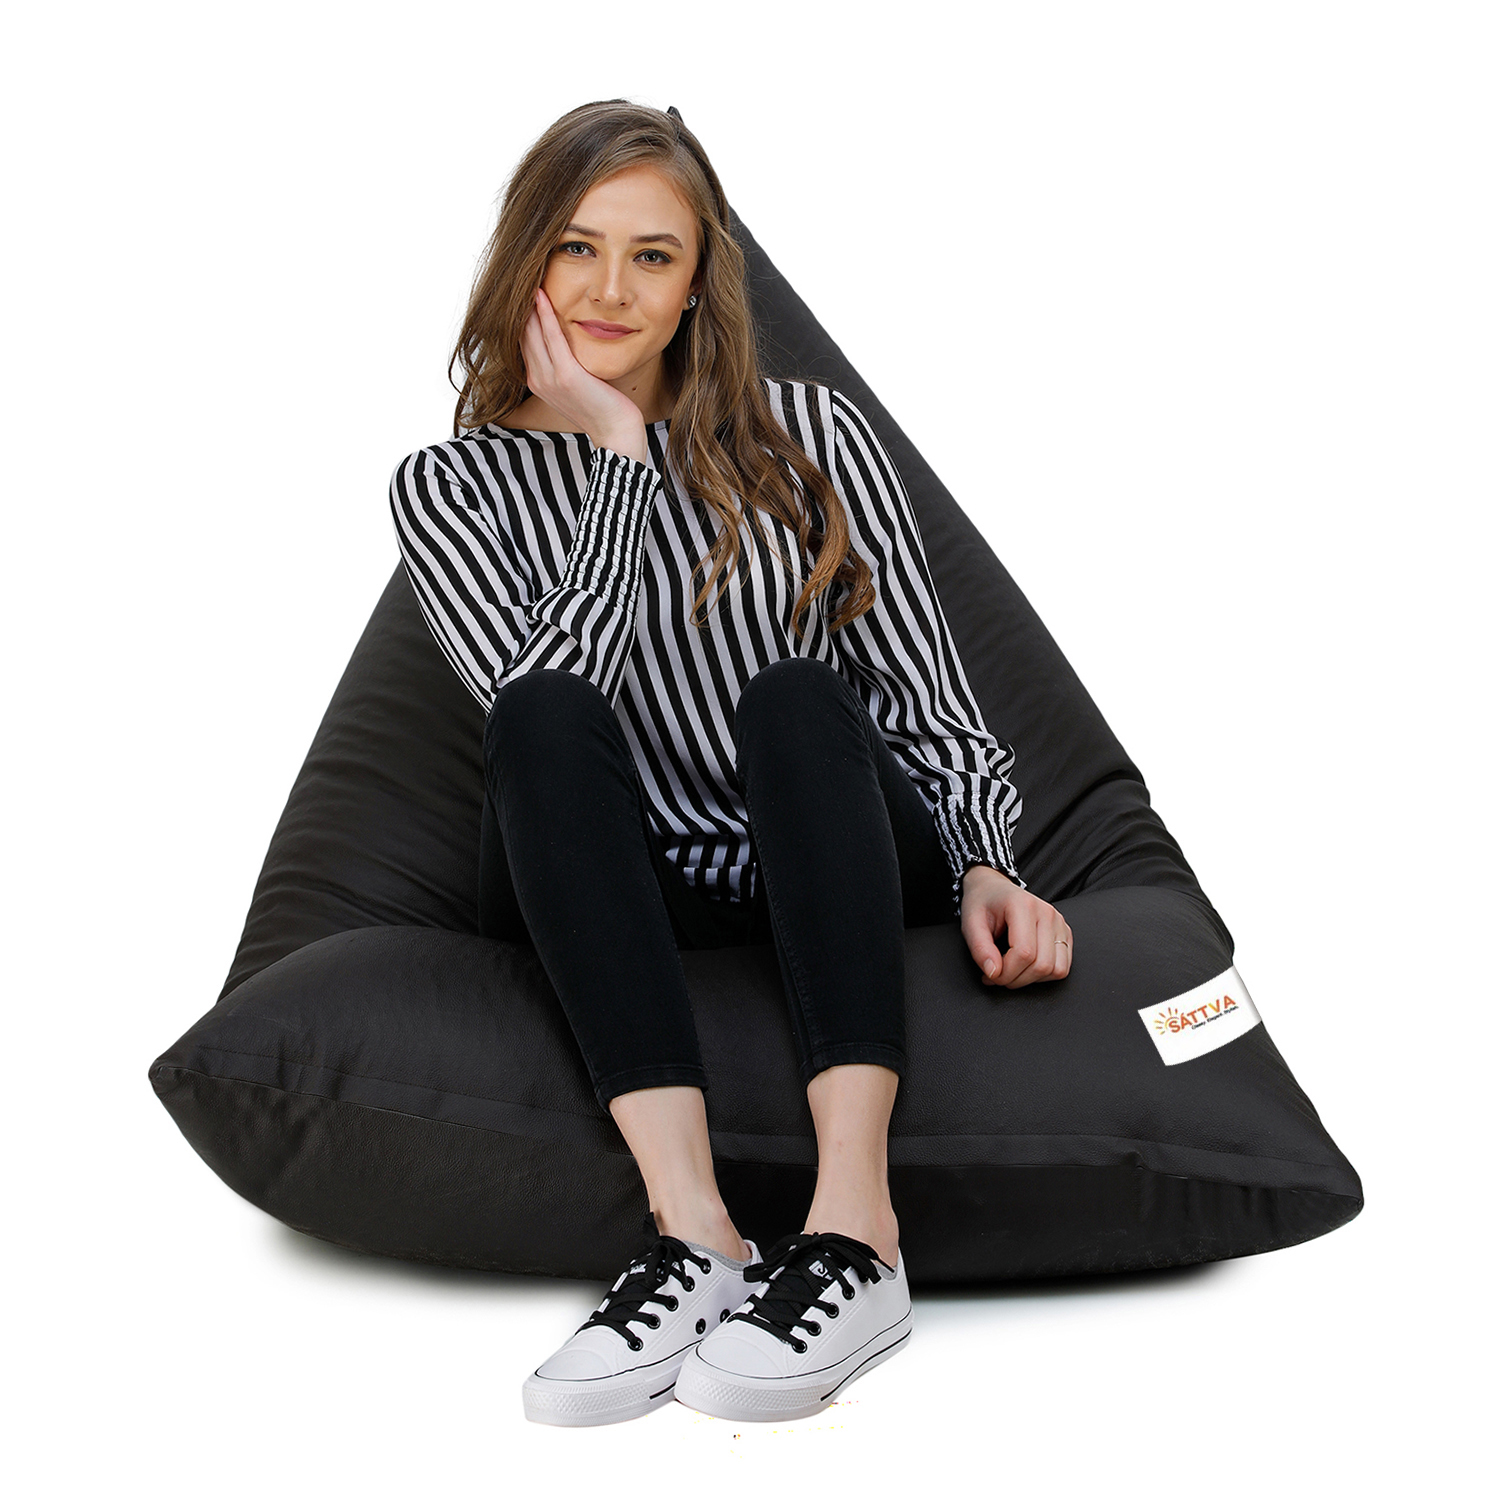 Sattva Triangle Shaped Bean Bag Chair Filled (with Beans) - Brown